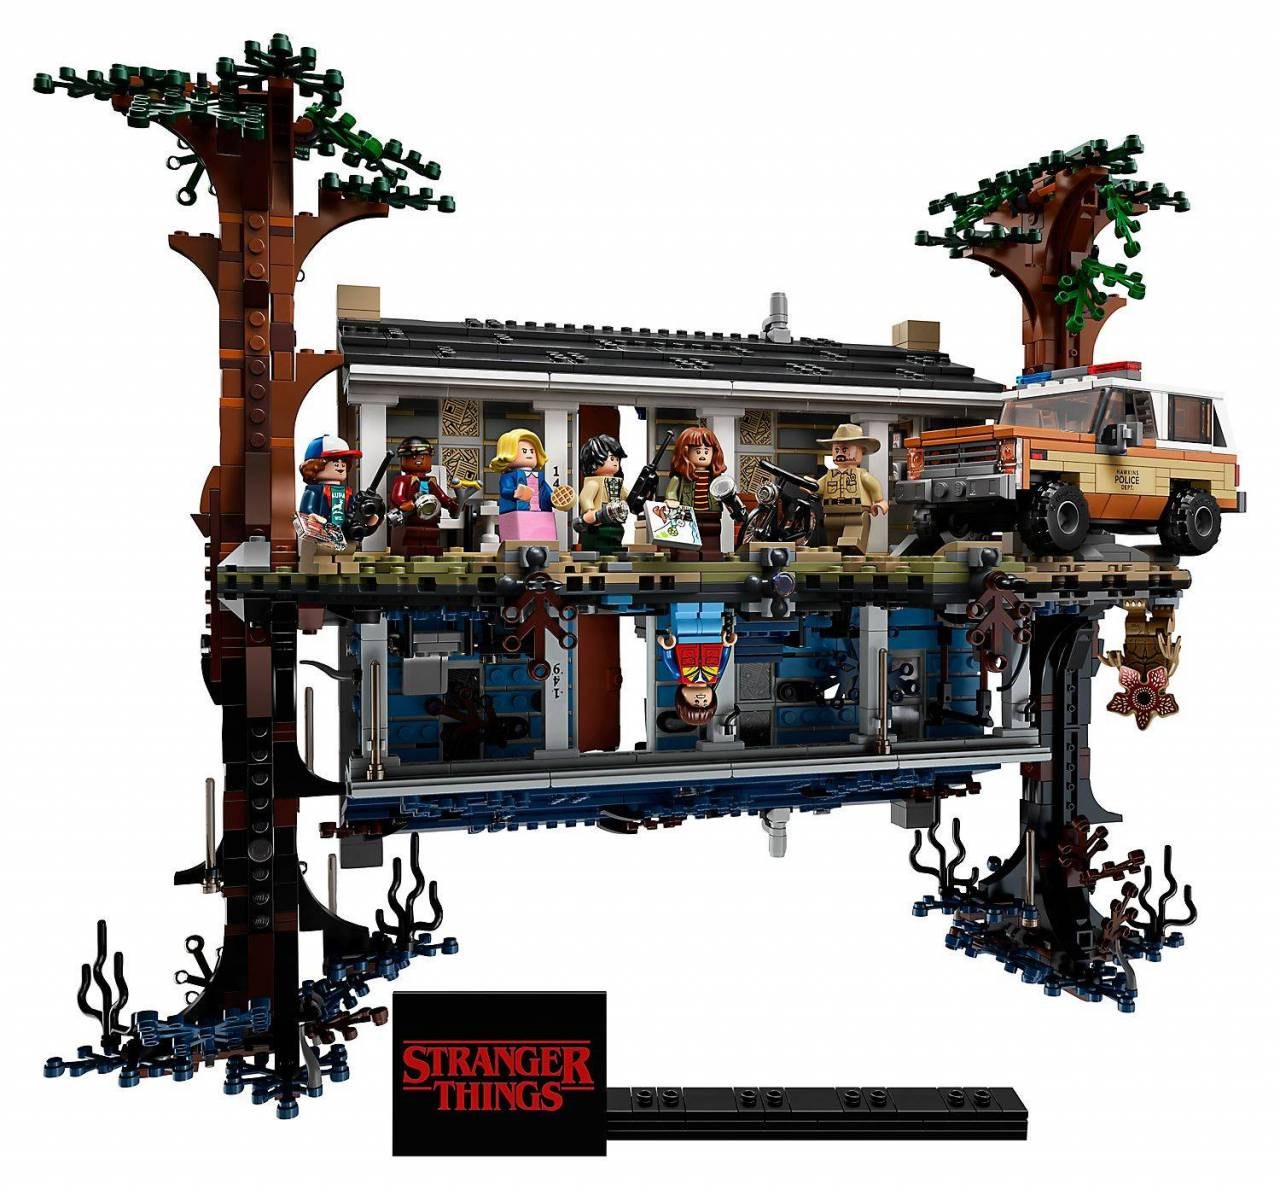 Lego Stranger Things - Complete Upside Down set (zonder doos)